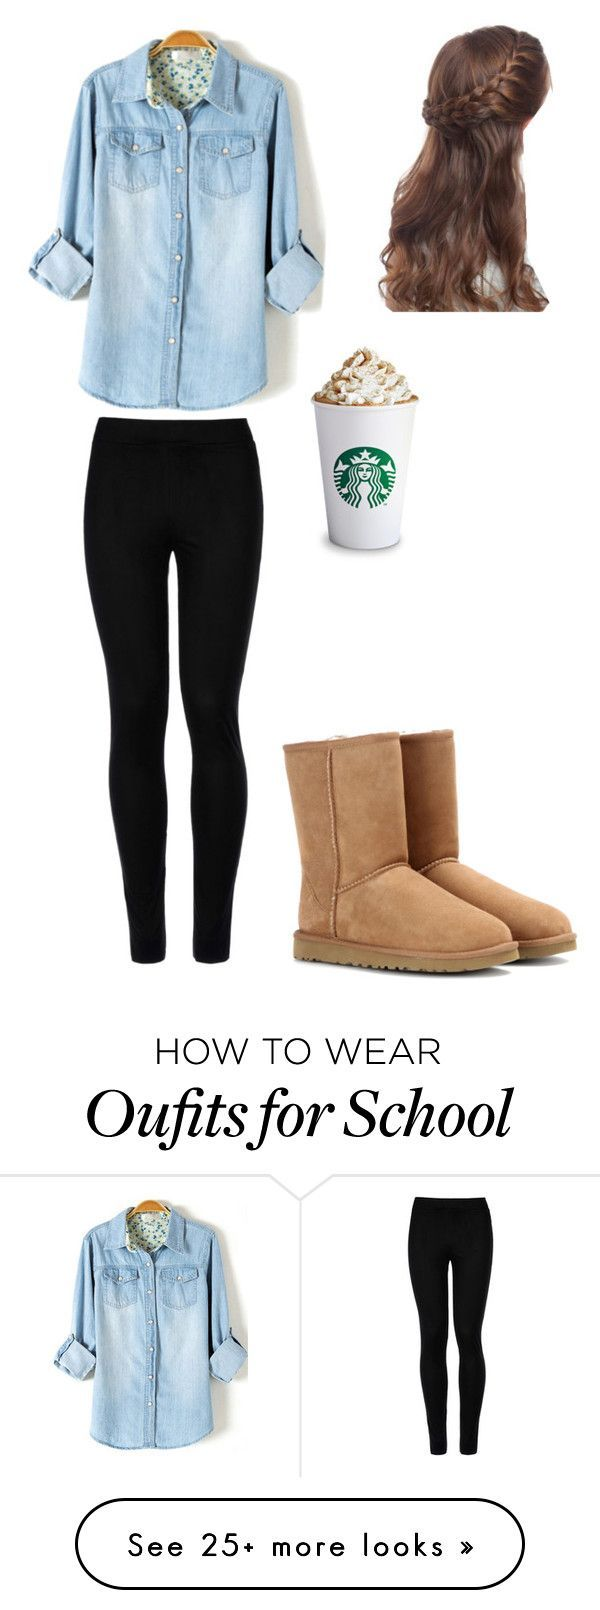 """""""School"""" by danceteweurope on Polyvore featuring Wolford and UGG Australia"""